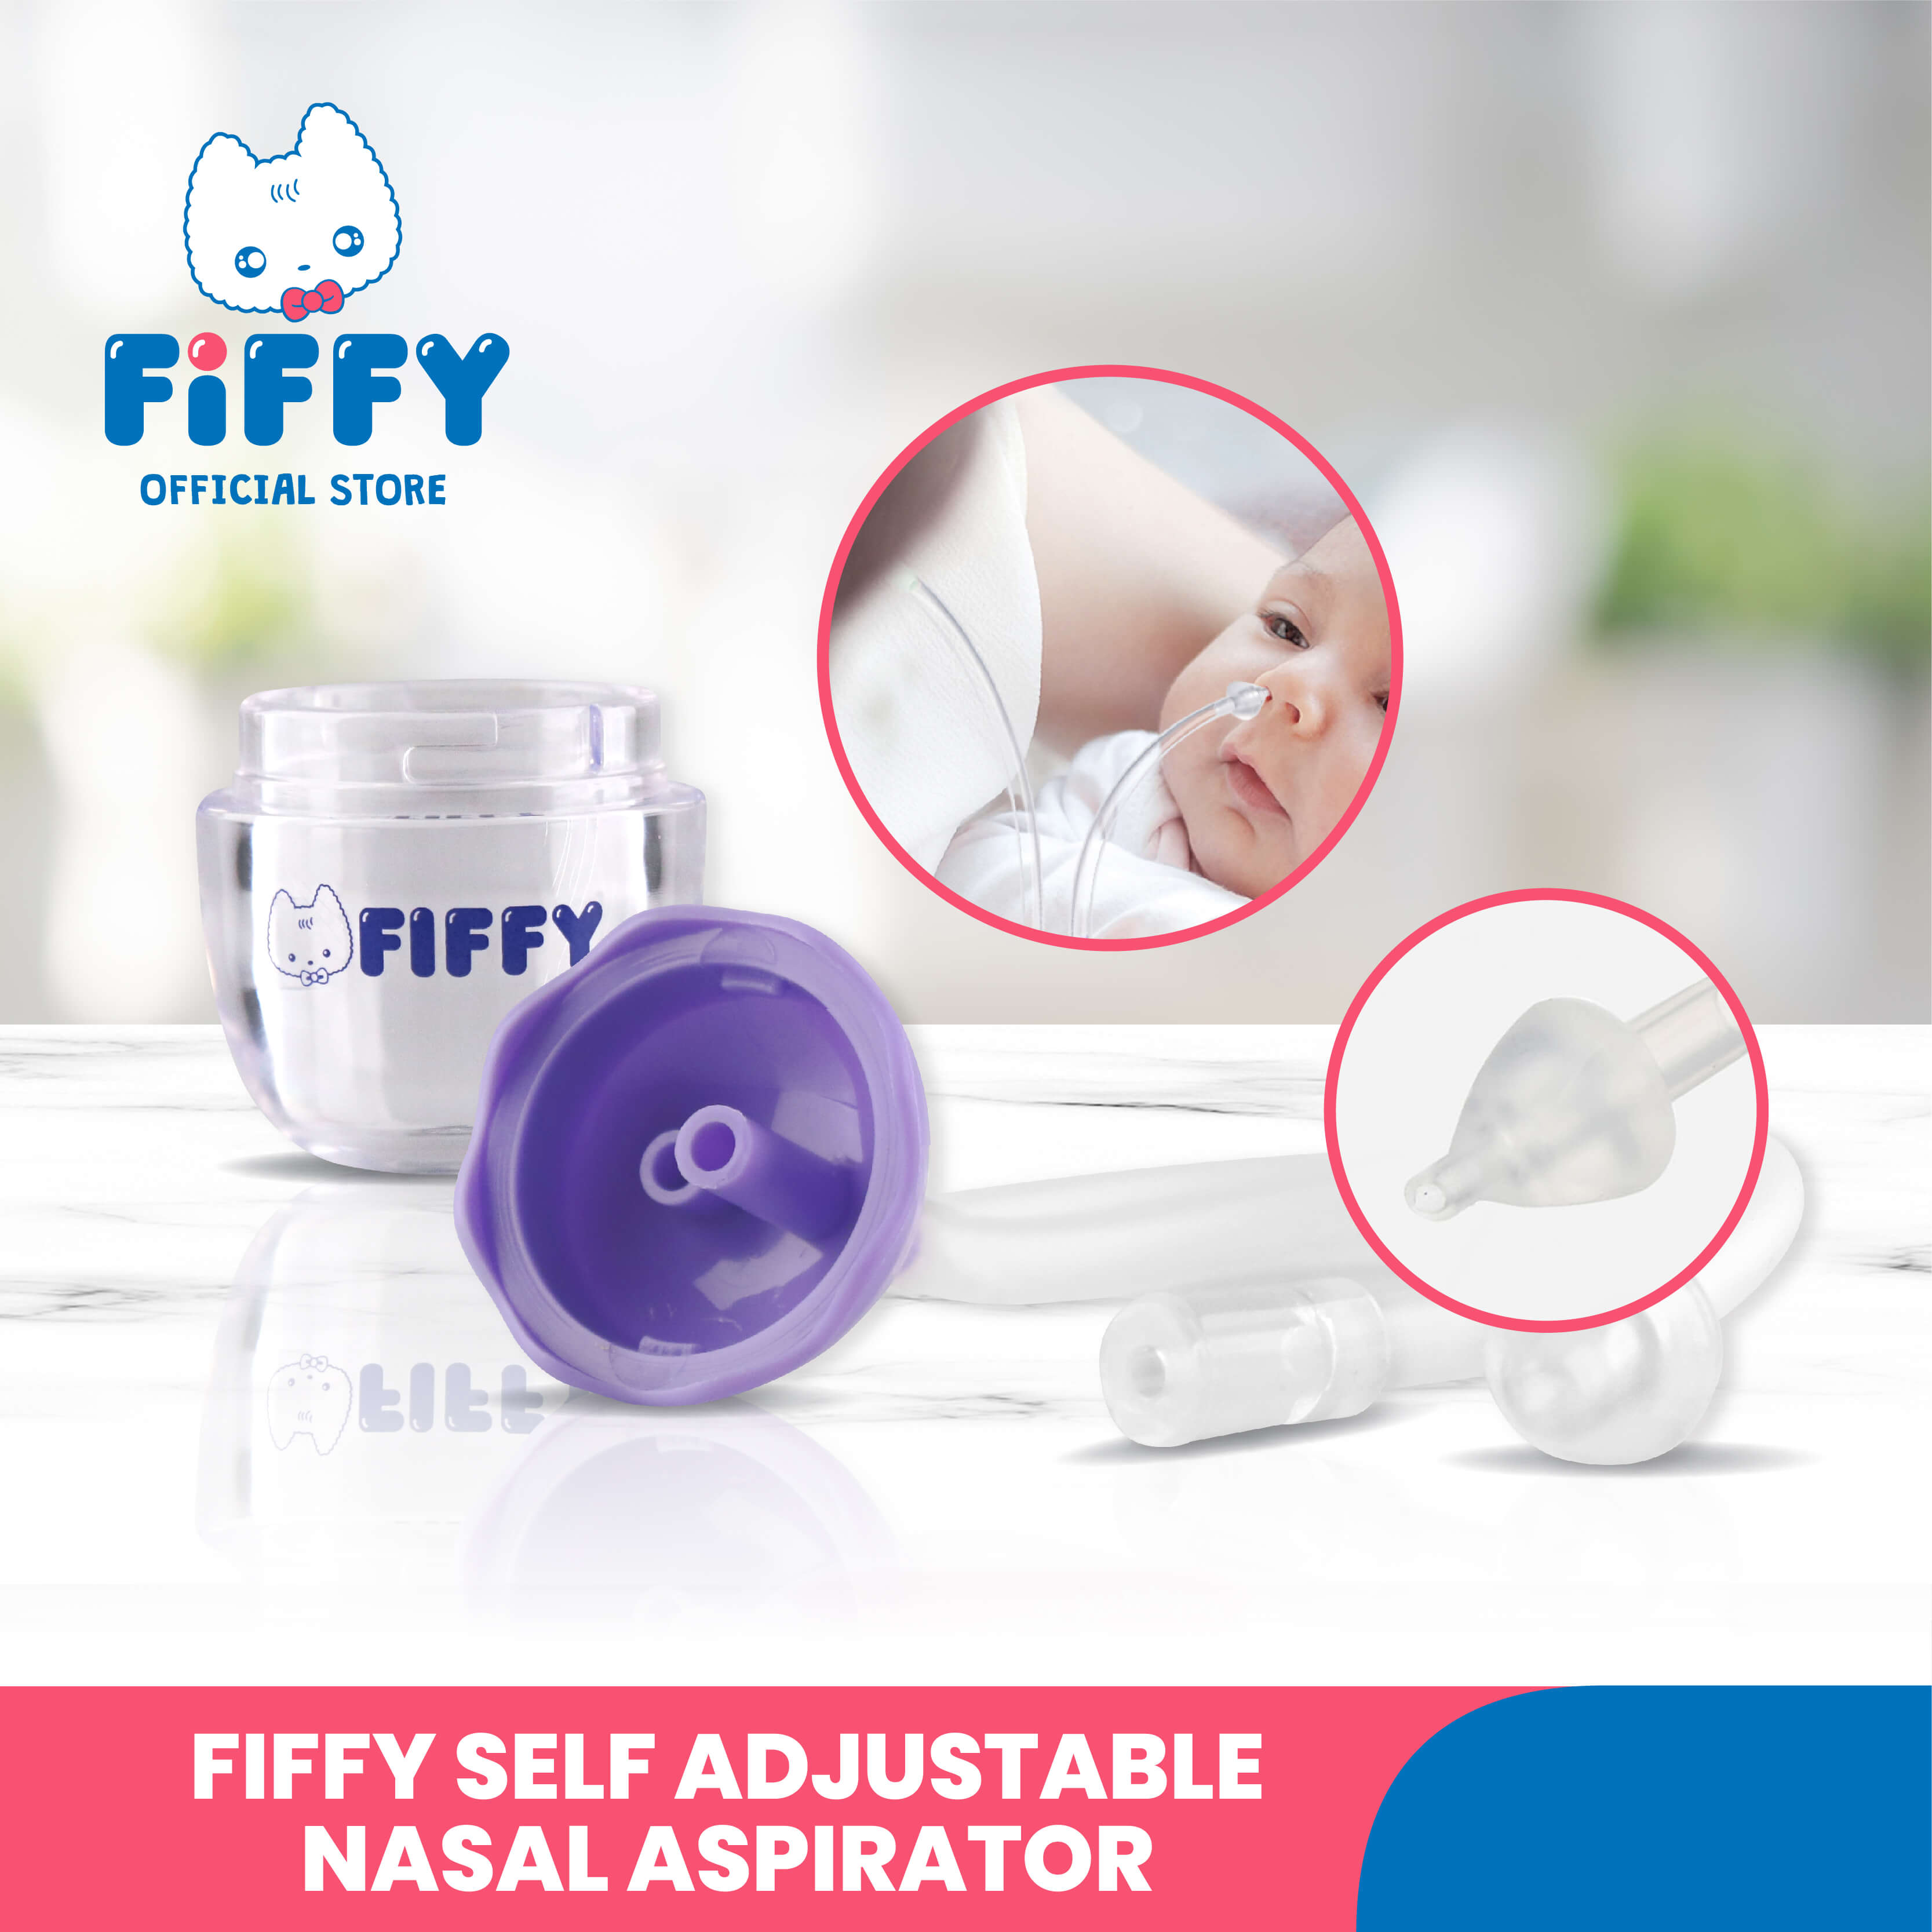 FIFFY SELF-ADJUSTMENT NASAL ASPIRATOR